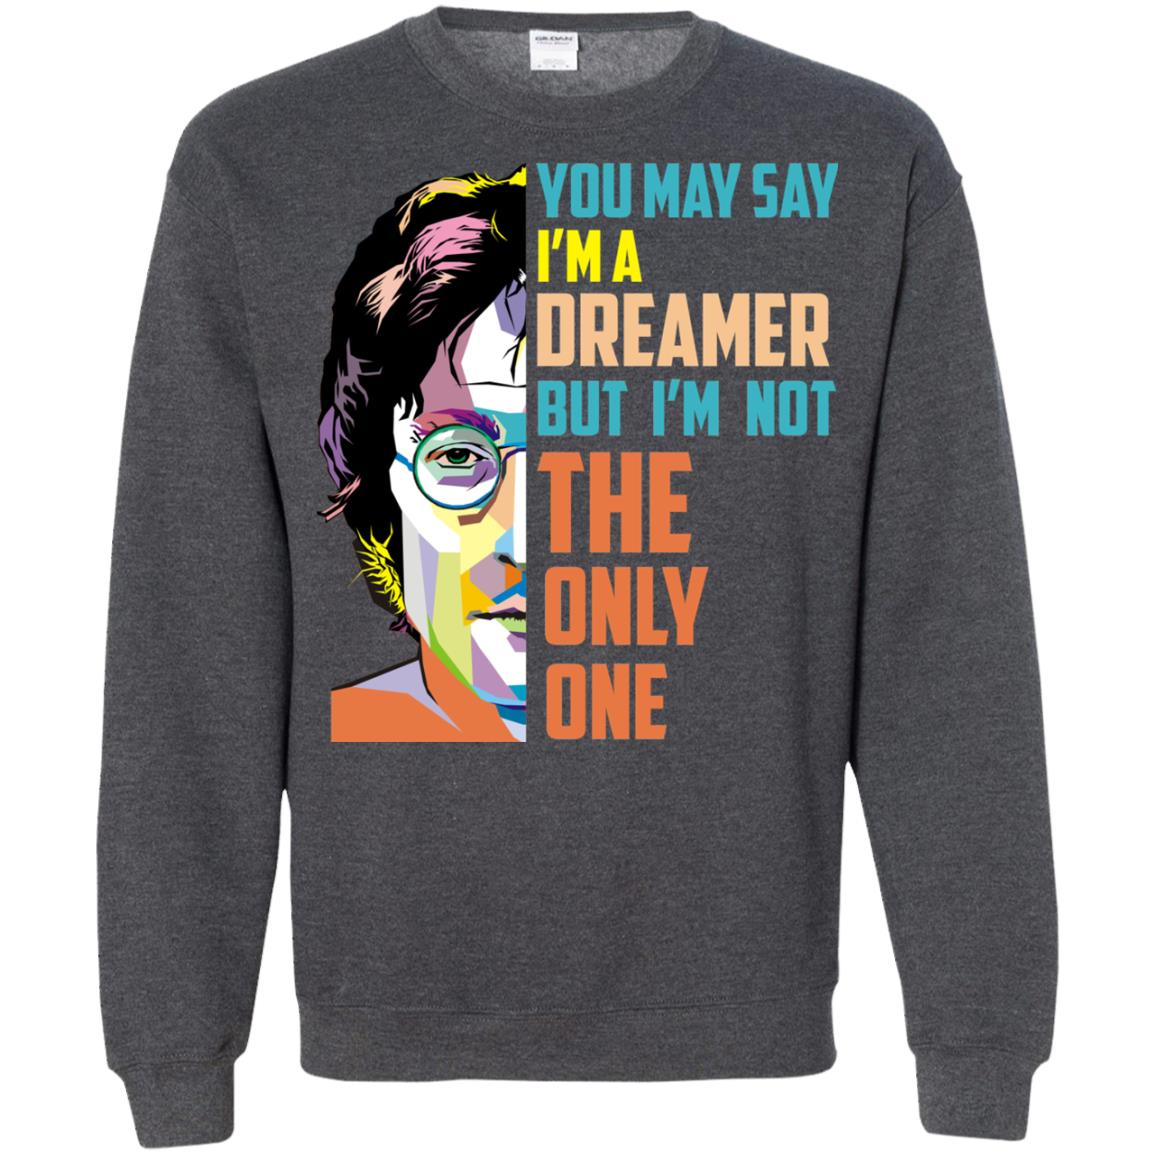 image 133px John Lennon: You may say I'm a dreamer but I'm not the only one t shirt